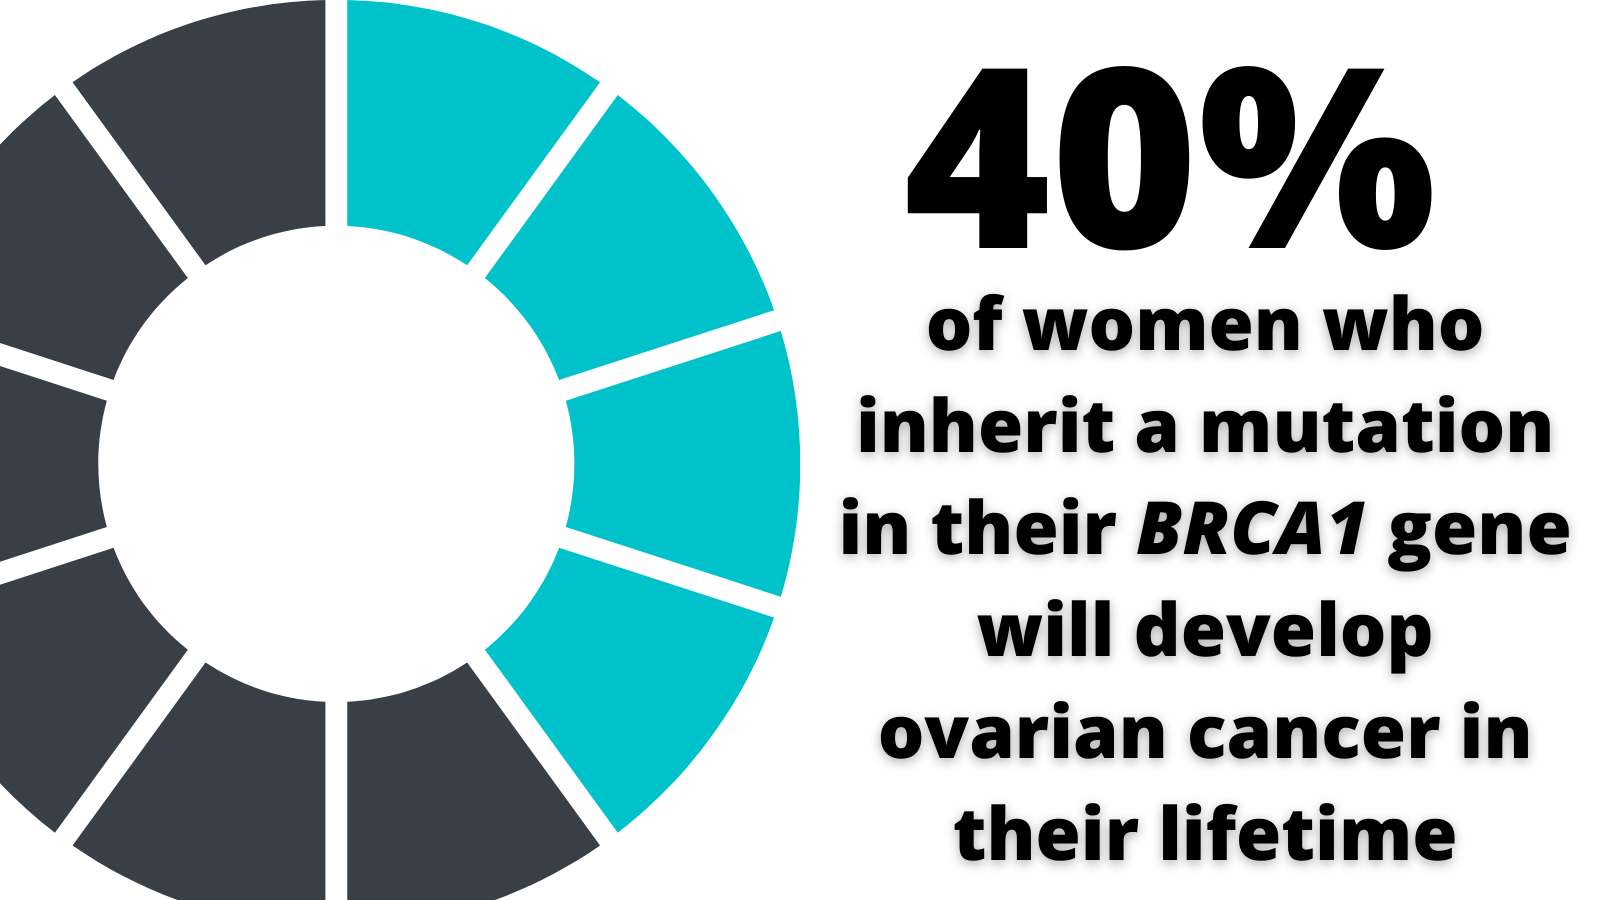 40% of women who inherit a mutatation in their BRCA1 gene will develop ovarian cancer in their lifetime.